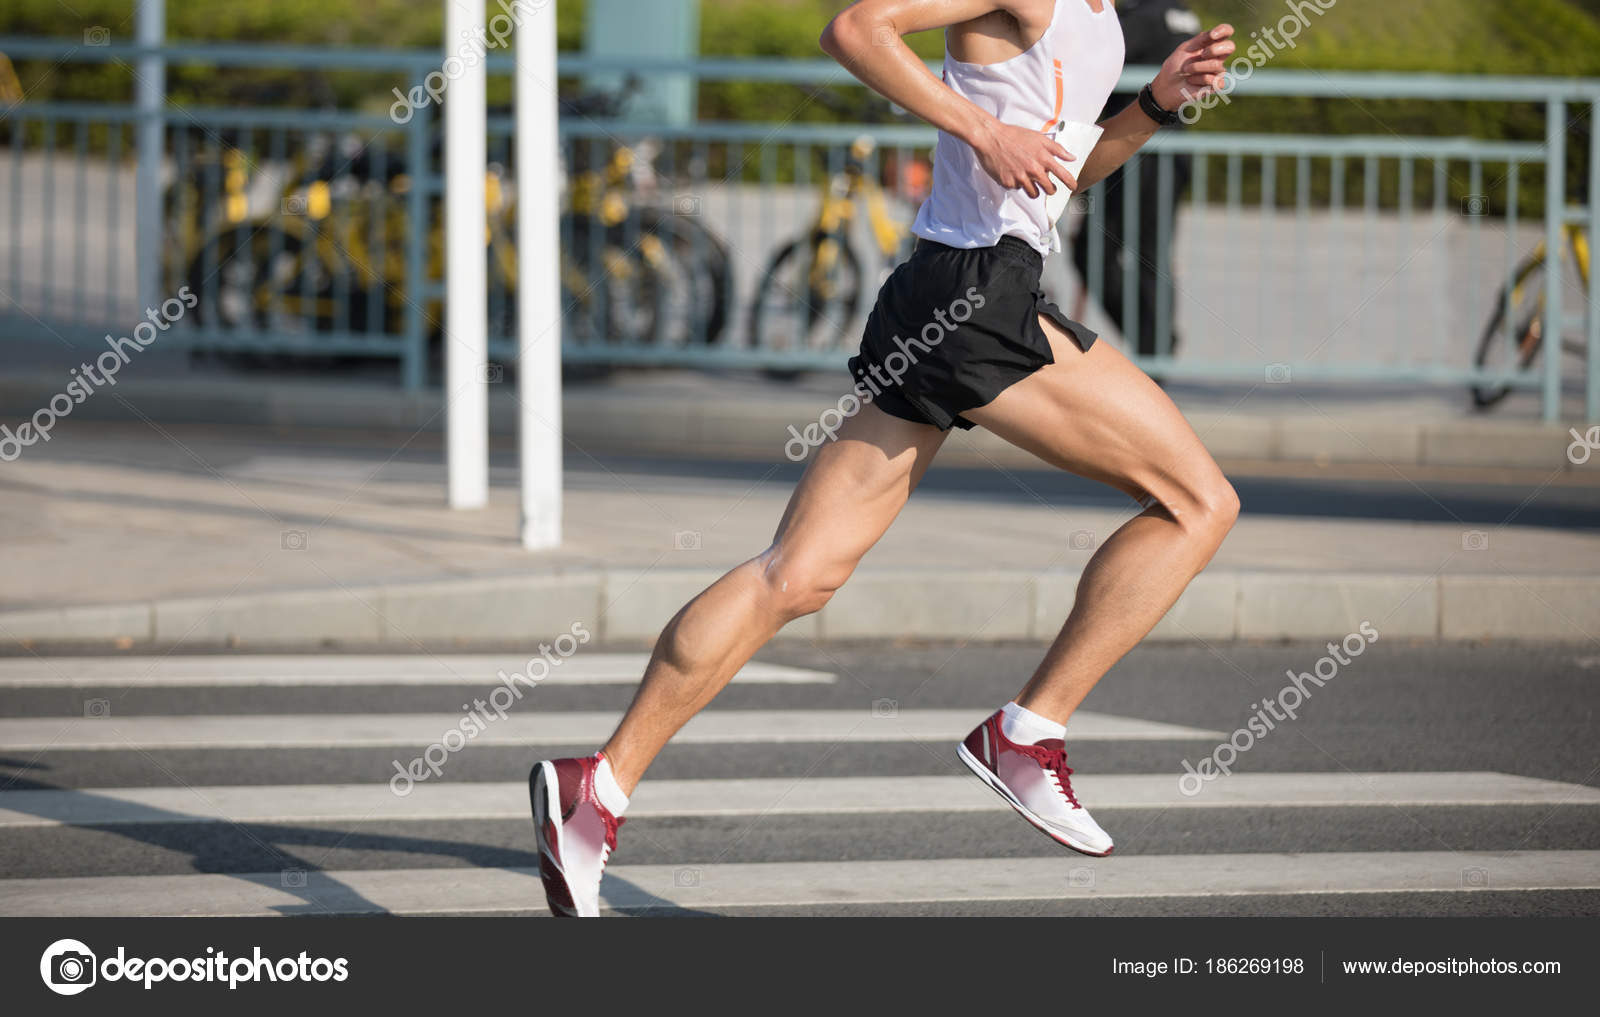 Marathon Runner Legs Running City Road Stock Photo